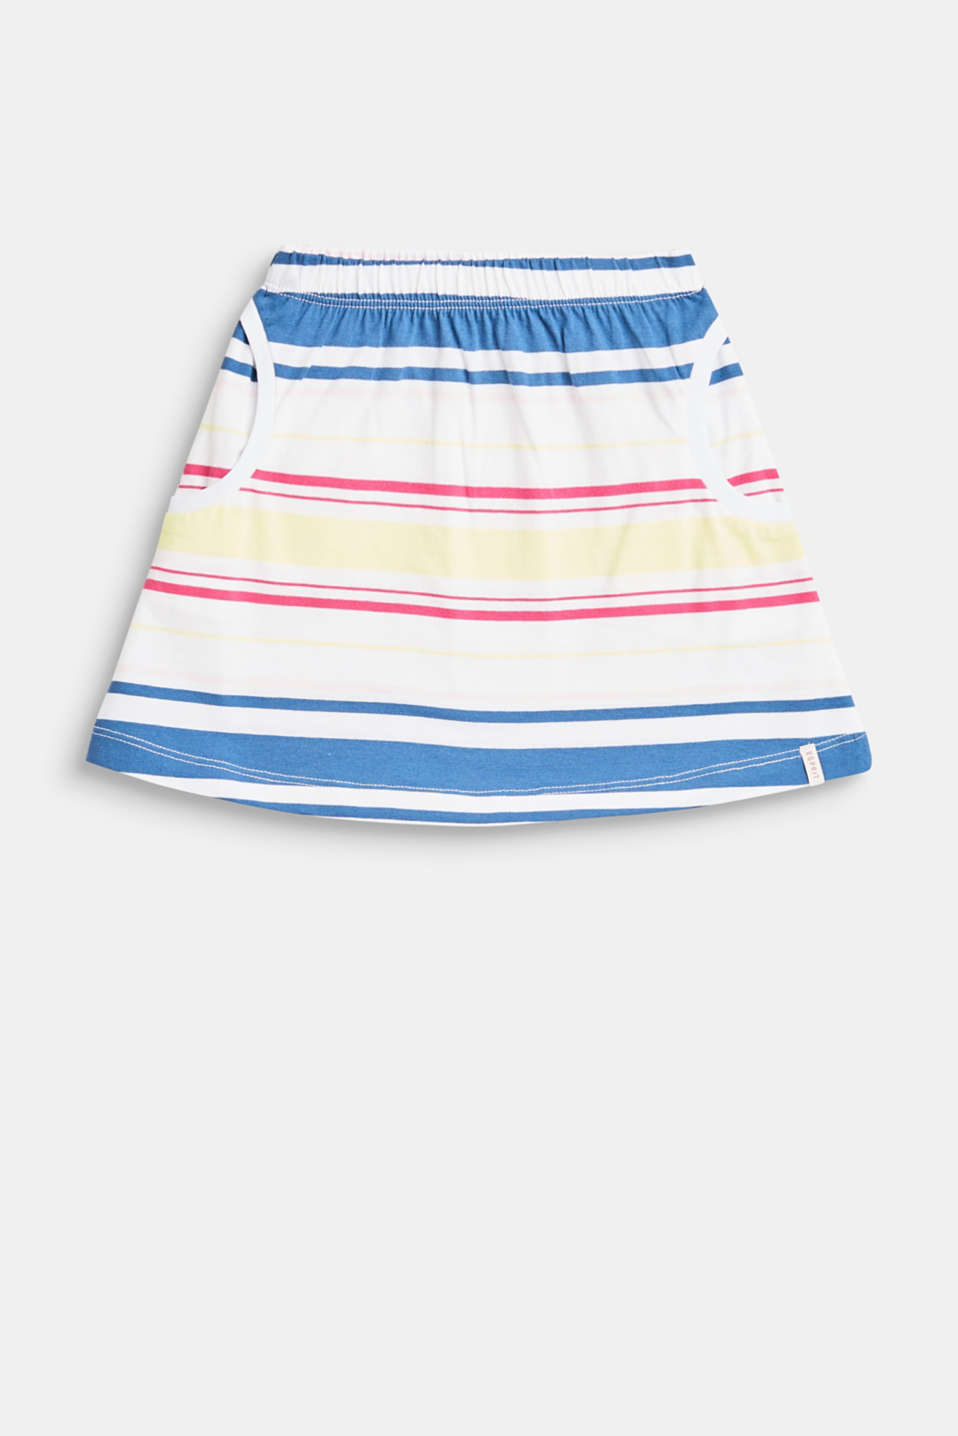 Esprit - Striped skirt with an elasticated waistband, 100% cotton